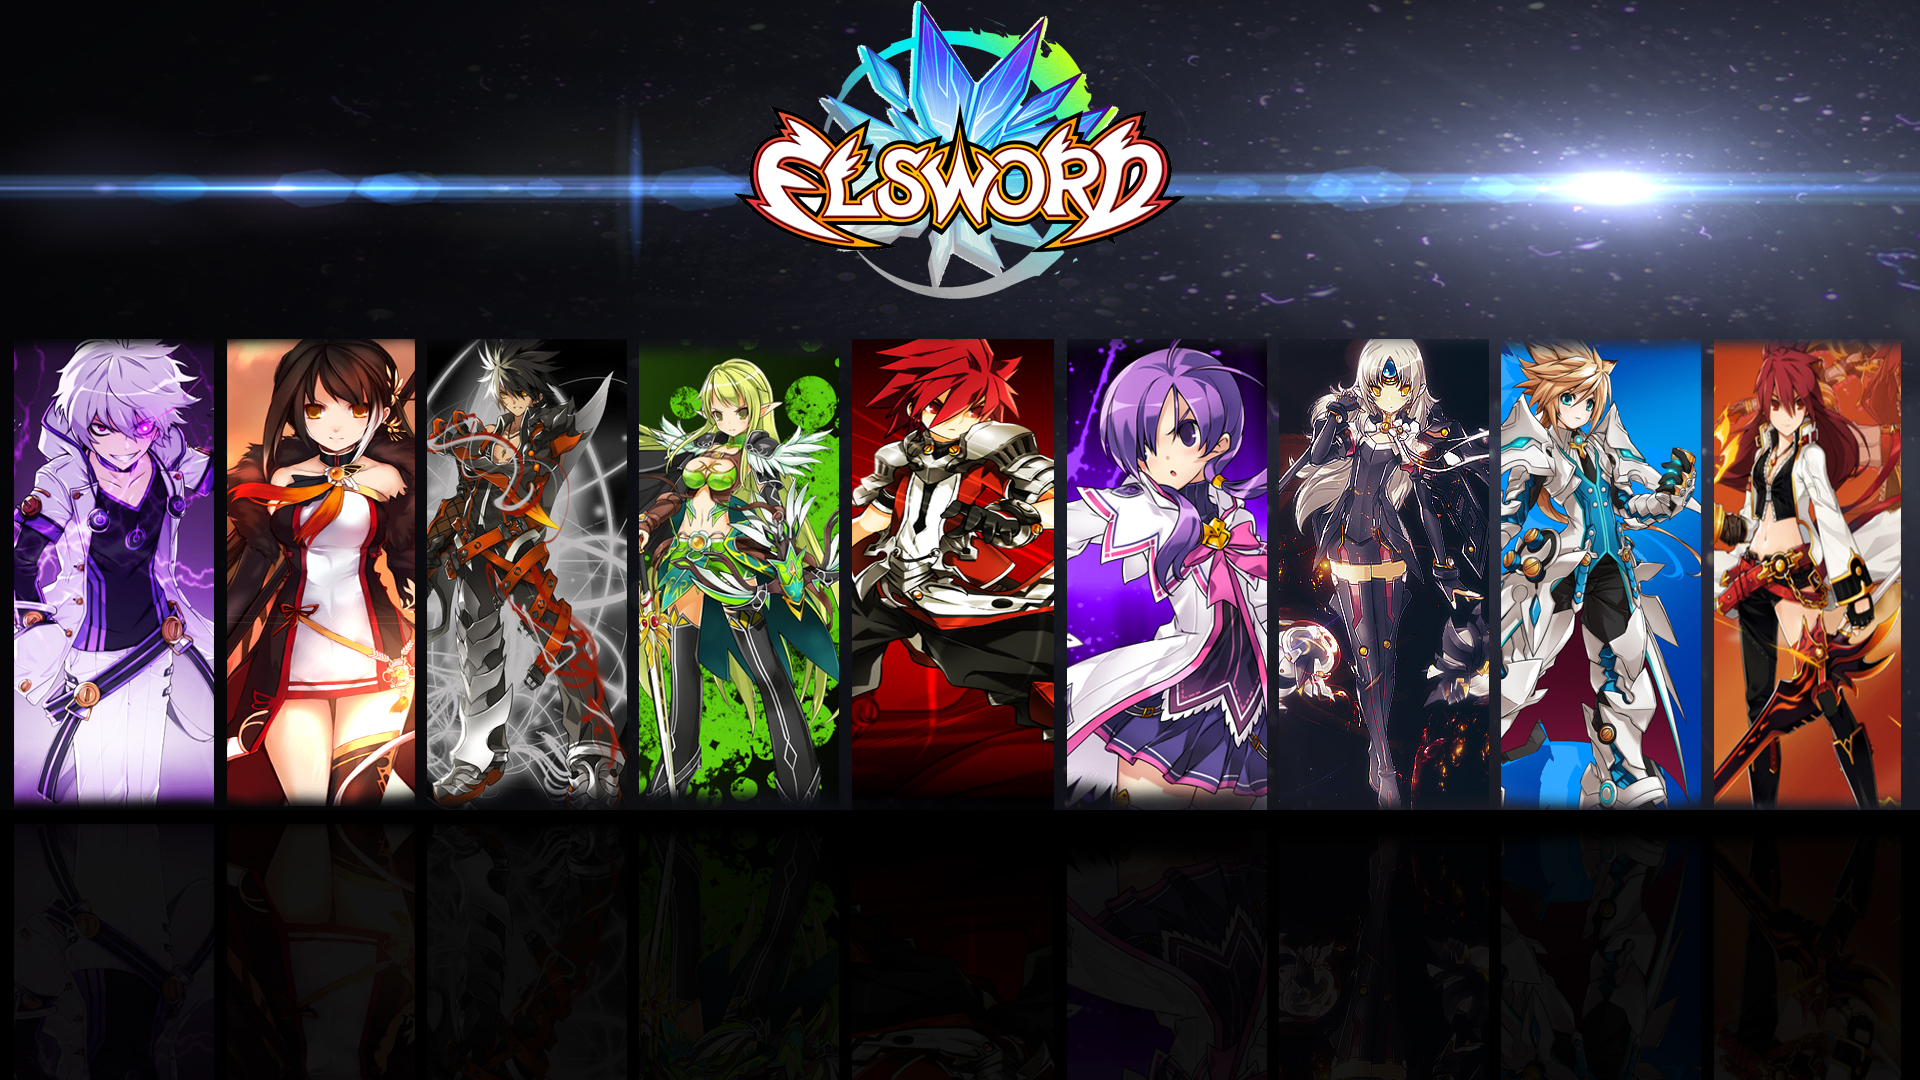 Wallpaper 1920x1080 by virispt on deviantart elsword wallpaper 1920x1080 by virispt elsword wallpaper 1920x1080 by virispt voltagebd Image collections